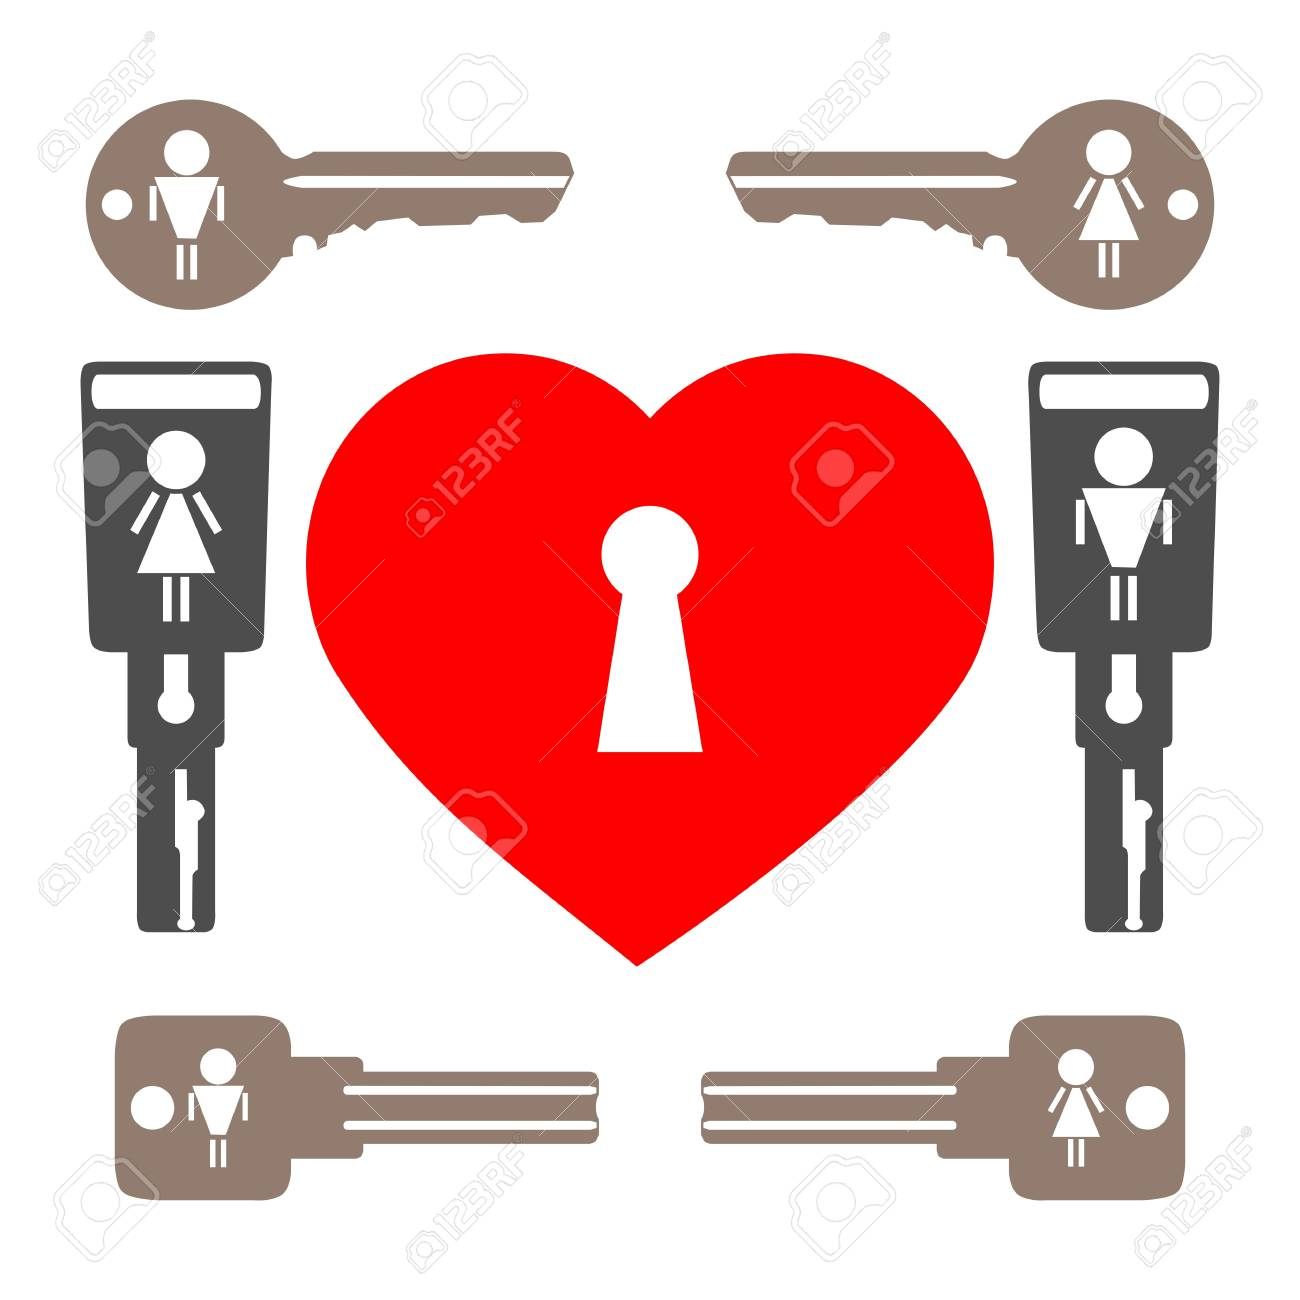 A set of keys and heart on a white background. Stock Vector - 17305336